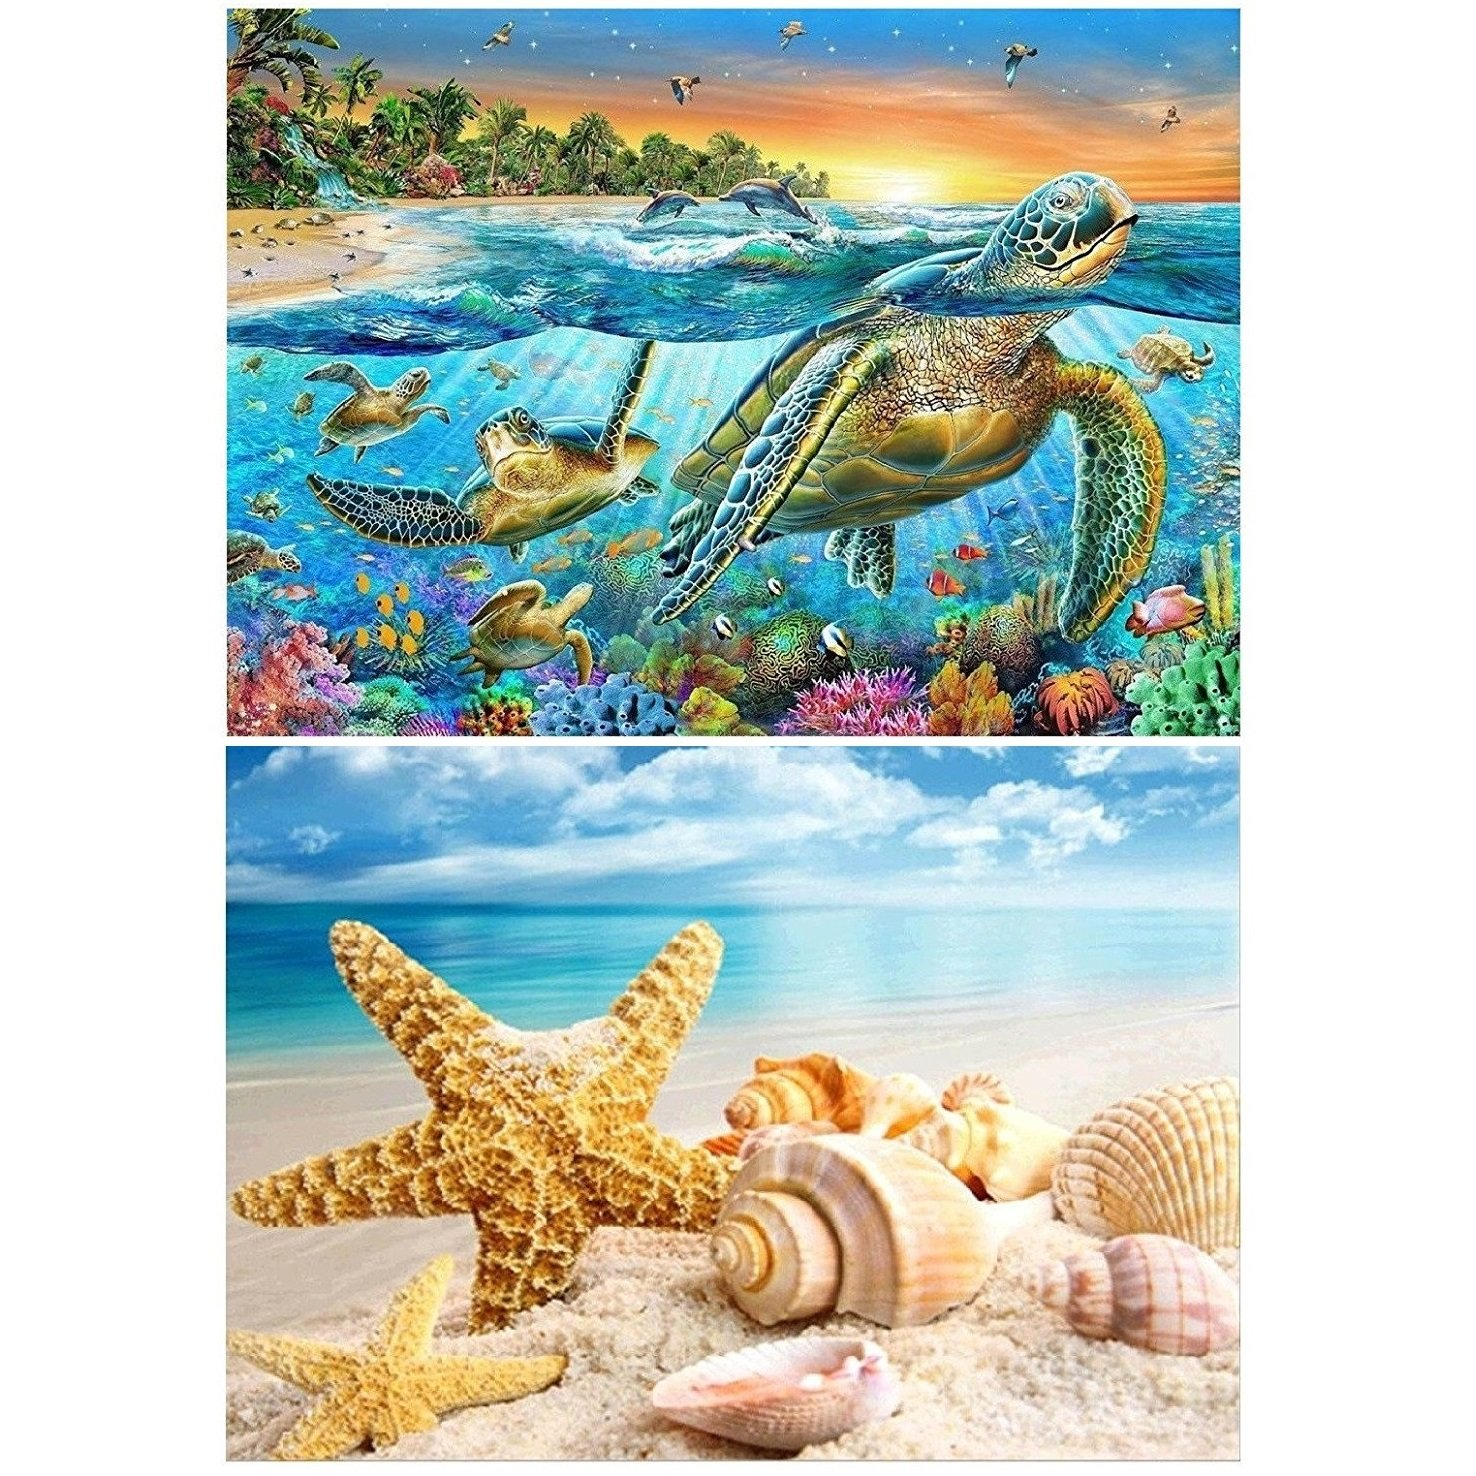 2 Packs 5D DIY Diamond Painting Set, Full Drill Diamond Painting Decorating Wall Stickers for Home Wall Decor, Sea Turtle and Starfish Seashell (40X30CM/16X12inch)